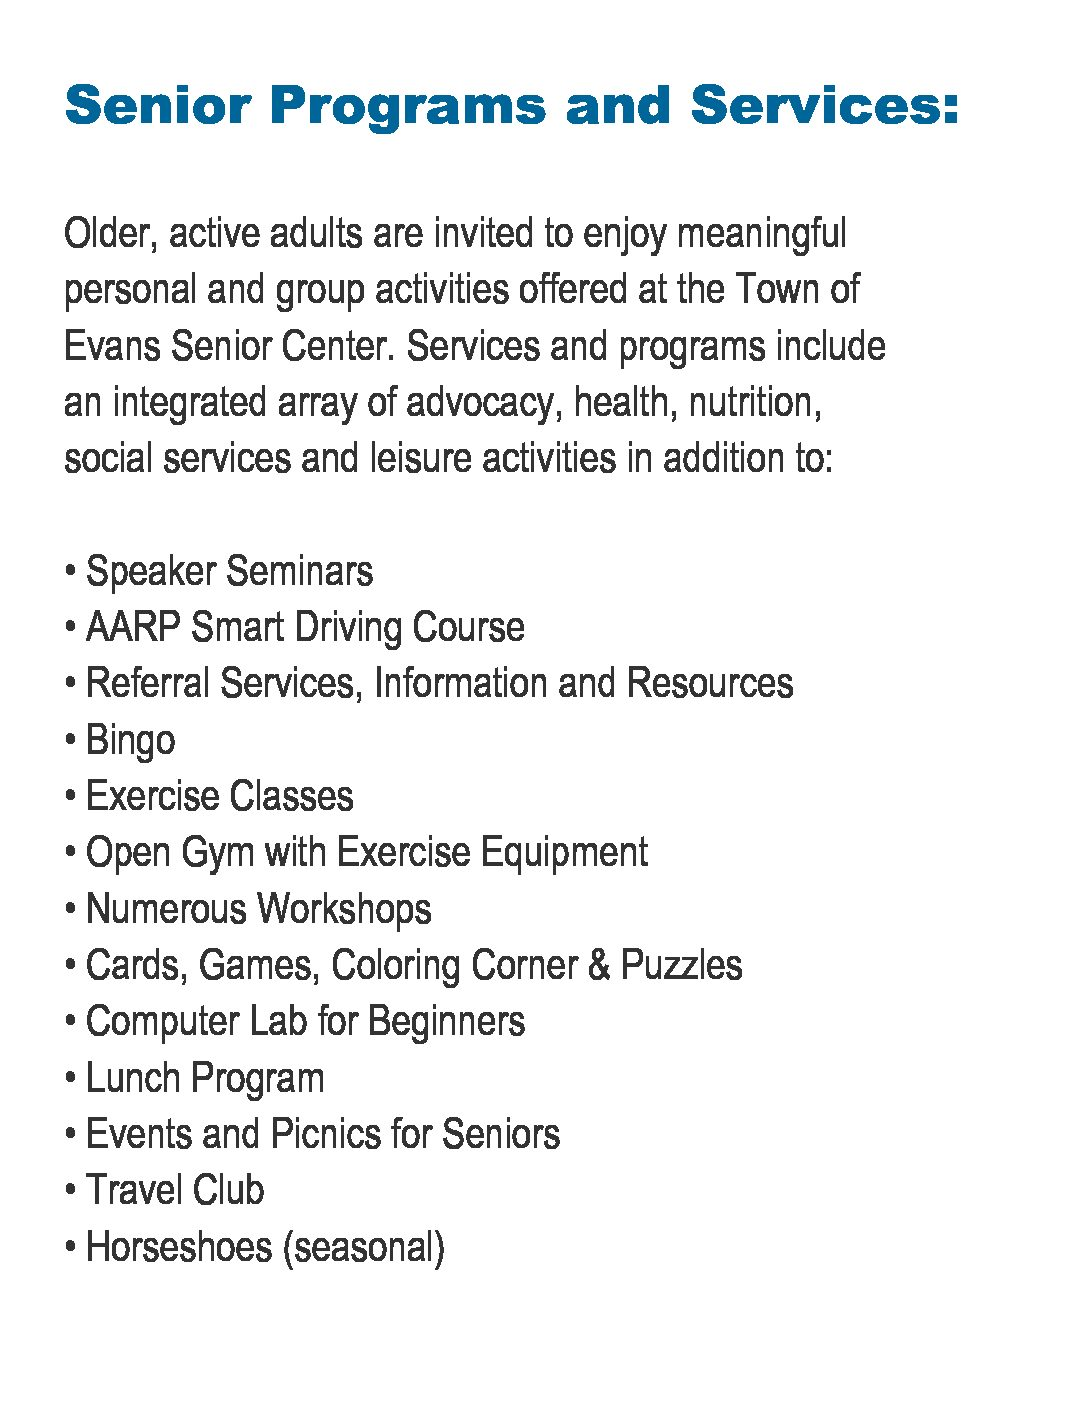 Senior Programs and Services